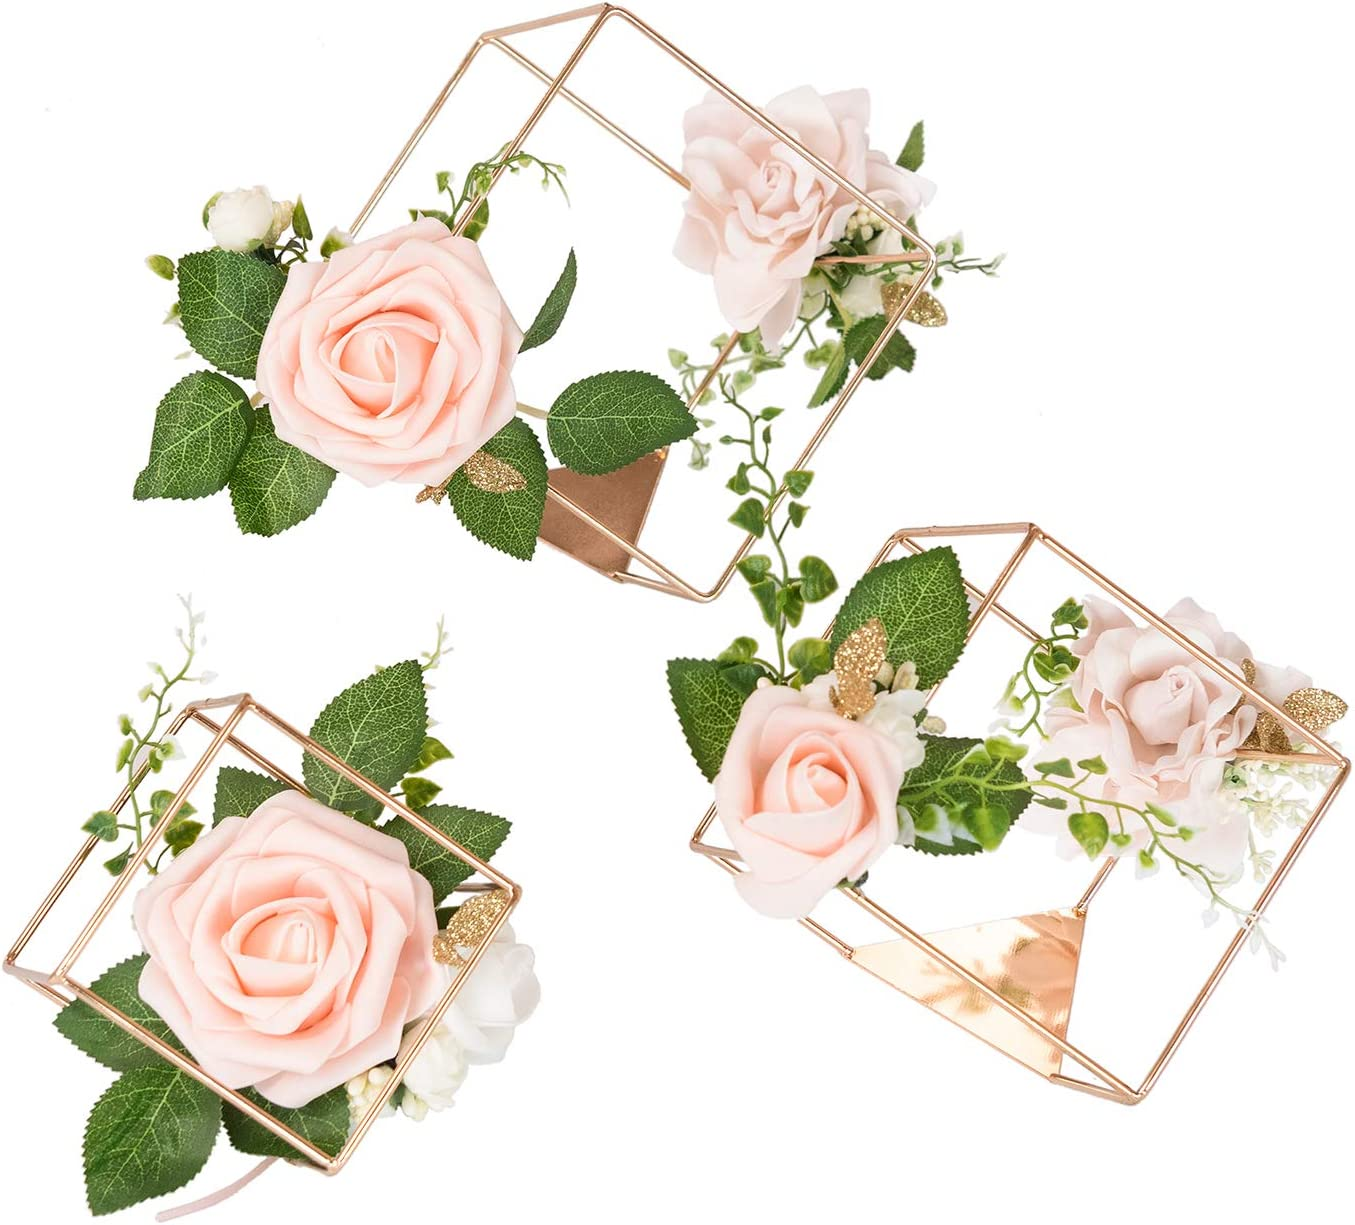 Amazon.com: Ling's moment Set of 3 Gold Geometric Rustic Wedding  Centerpieces Ornaments Blush Rose Flower Table Simple Centerpieces for  Wedding Party Decor: Kitchen & Dining